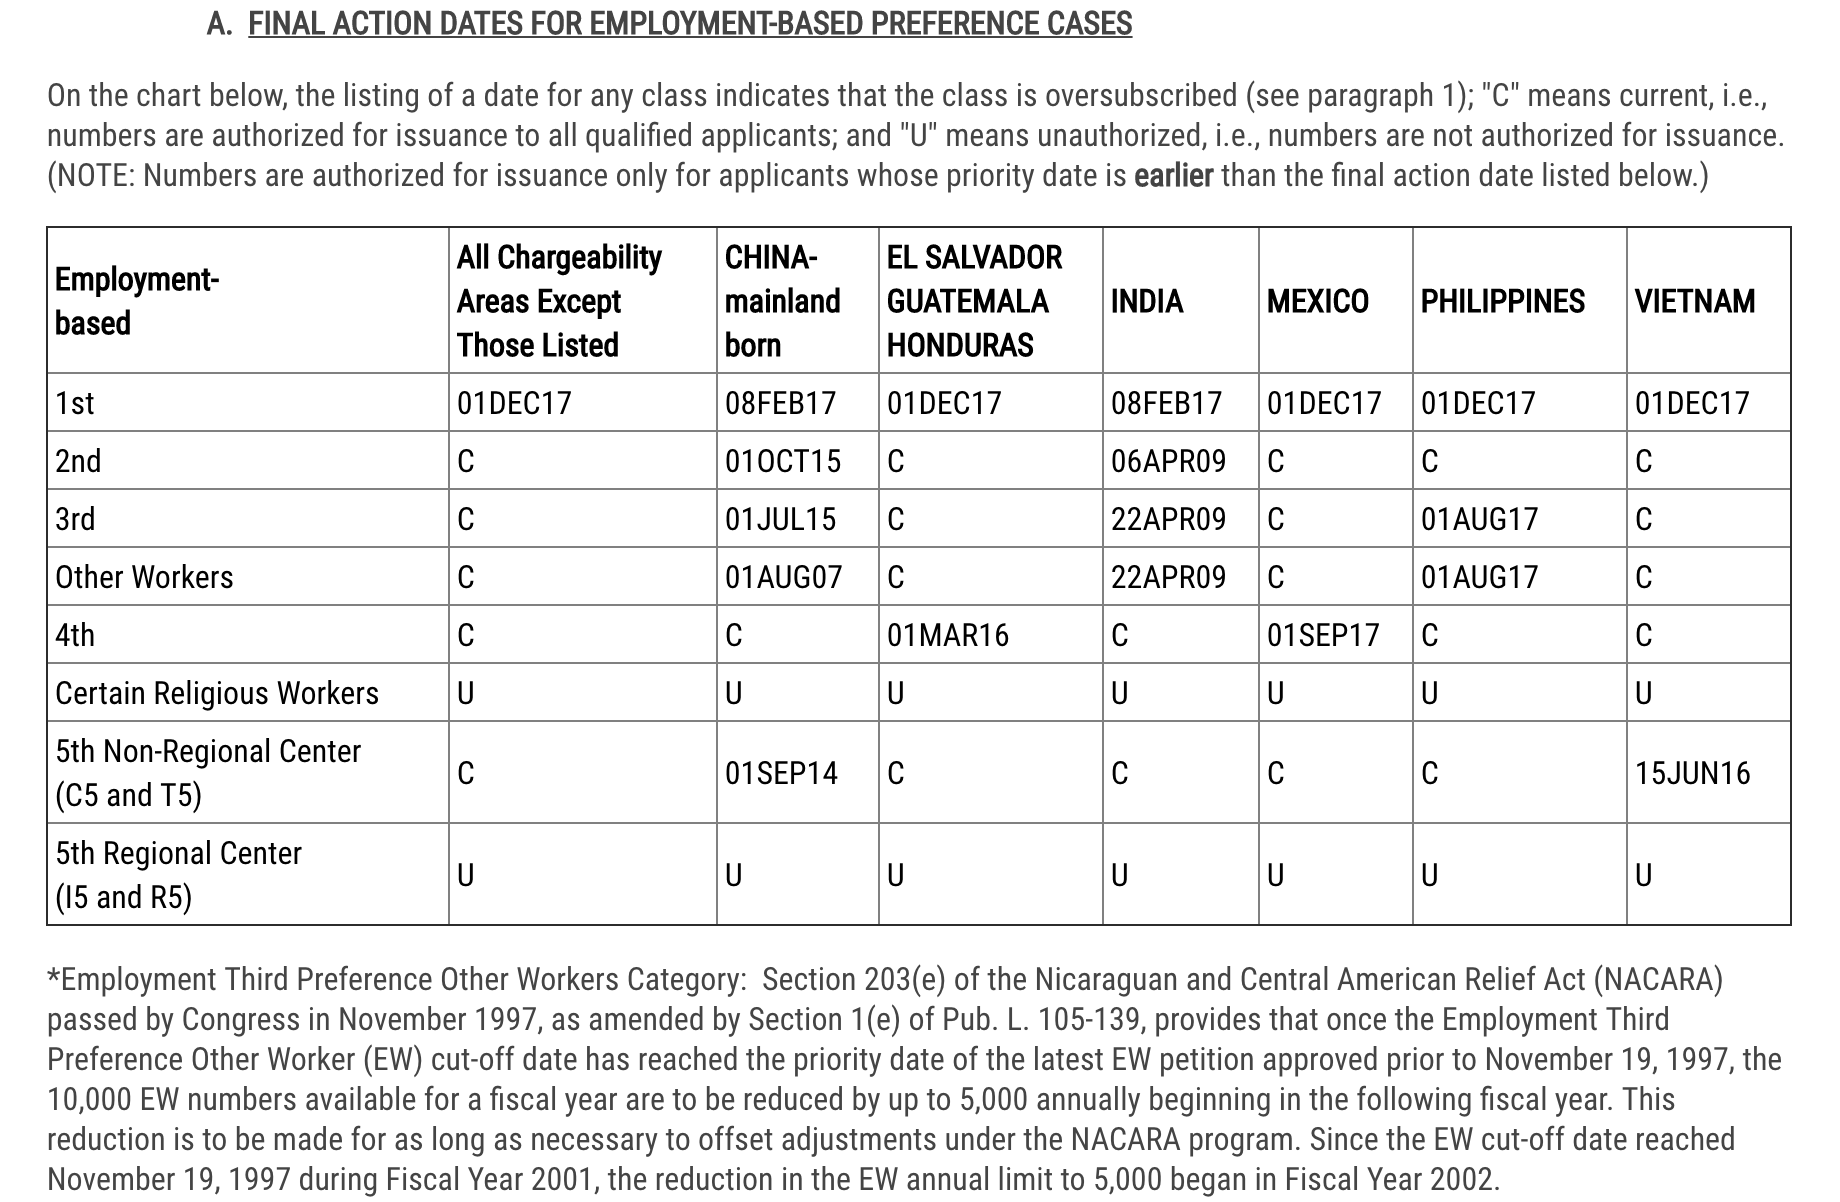 Visa Bulletin February 10 Final Action Dates for Employment